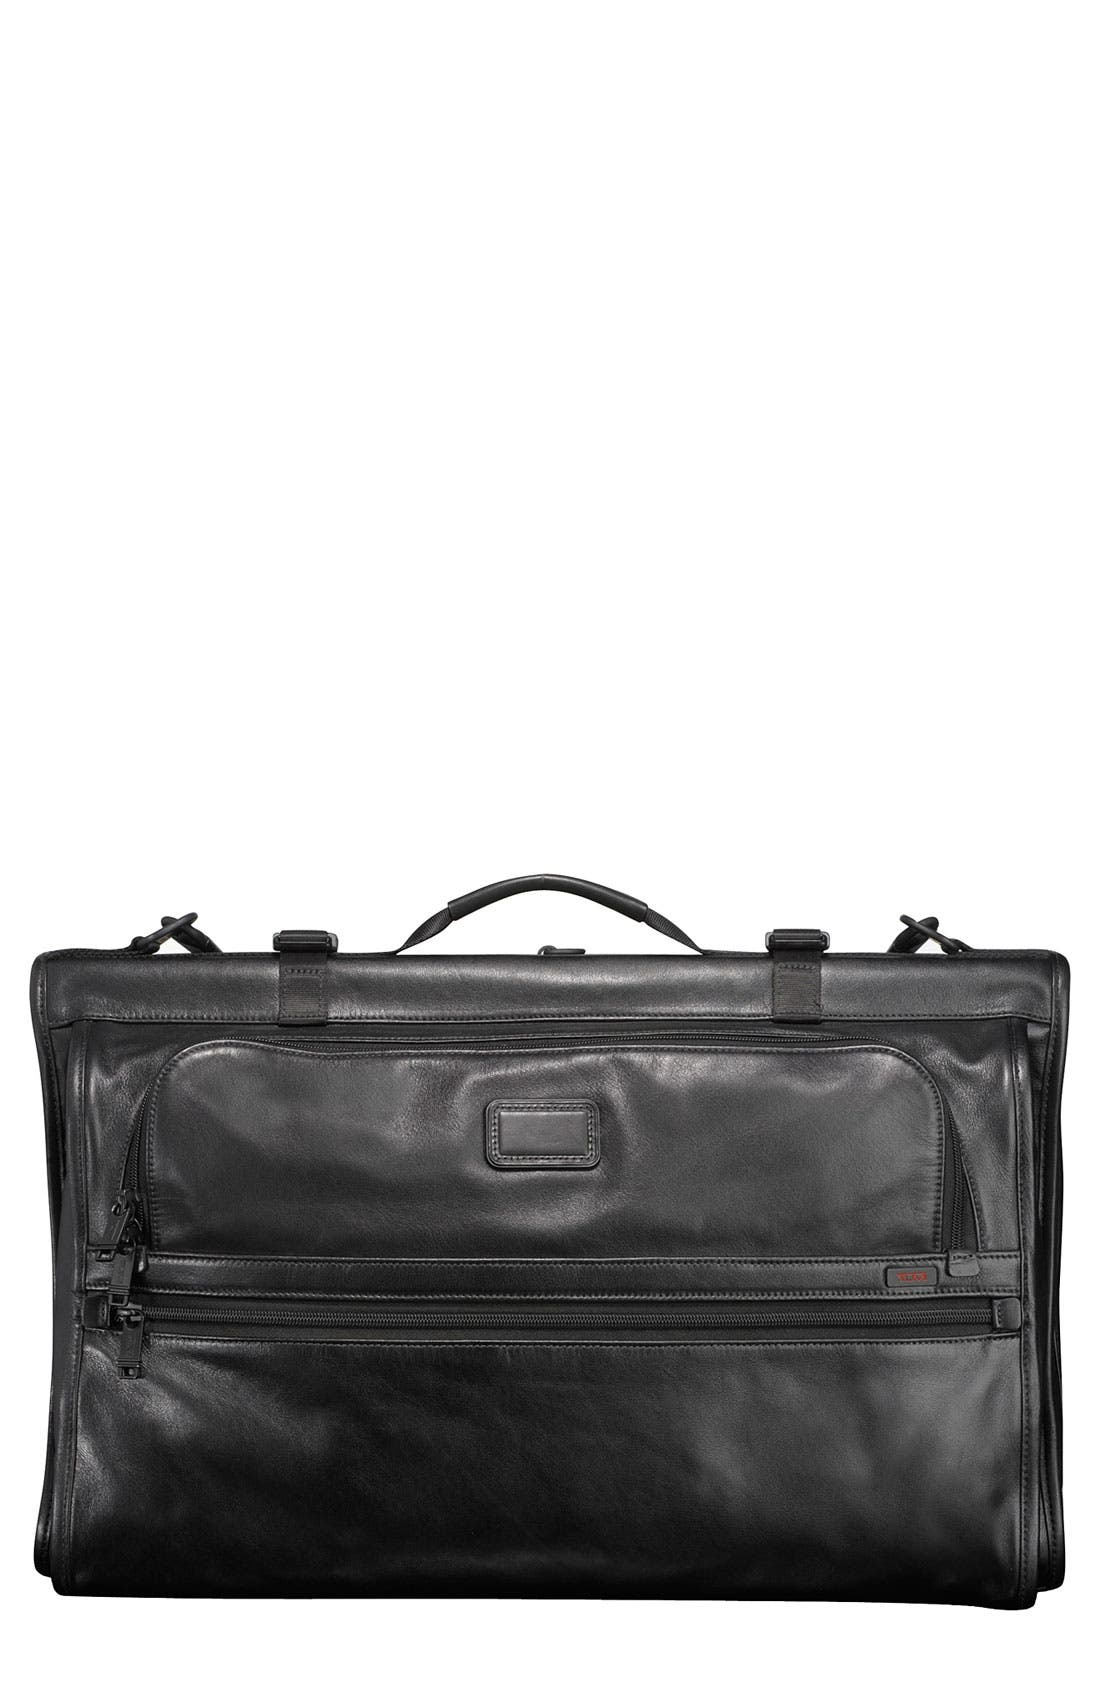 Main Image - Tumi Trifold Carry On Leather Garment Carrier